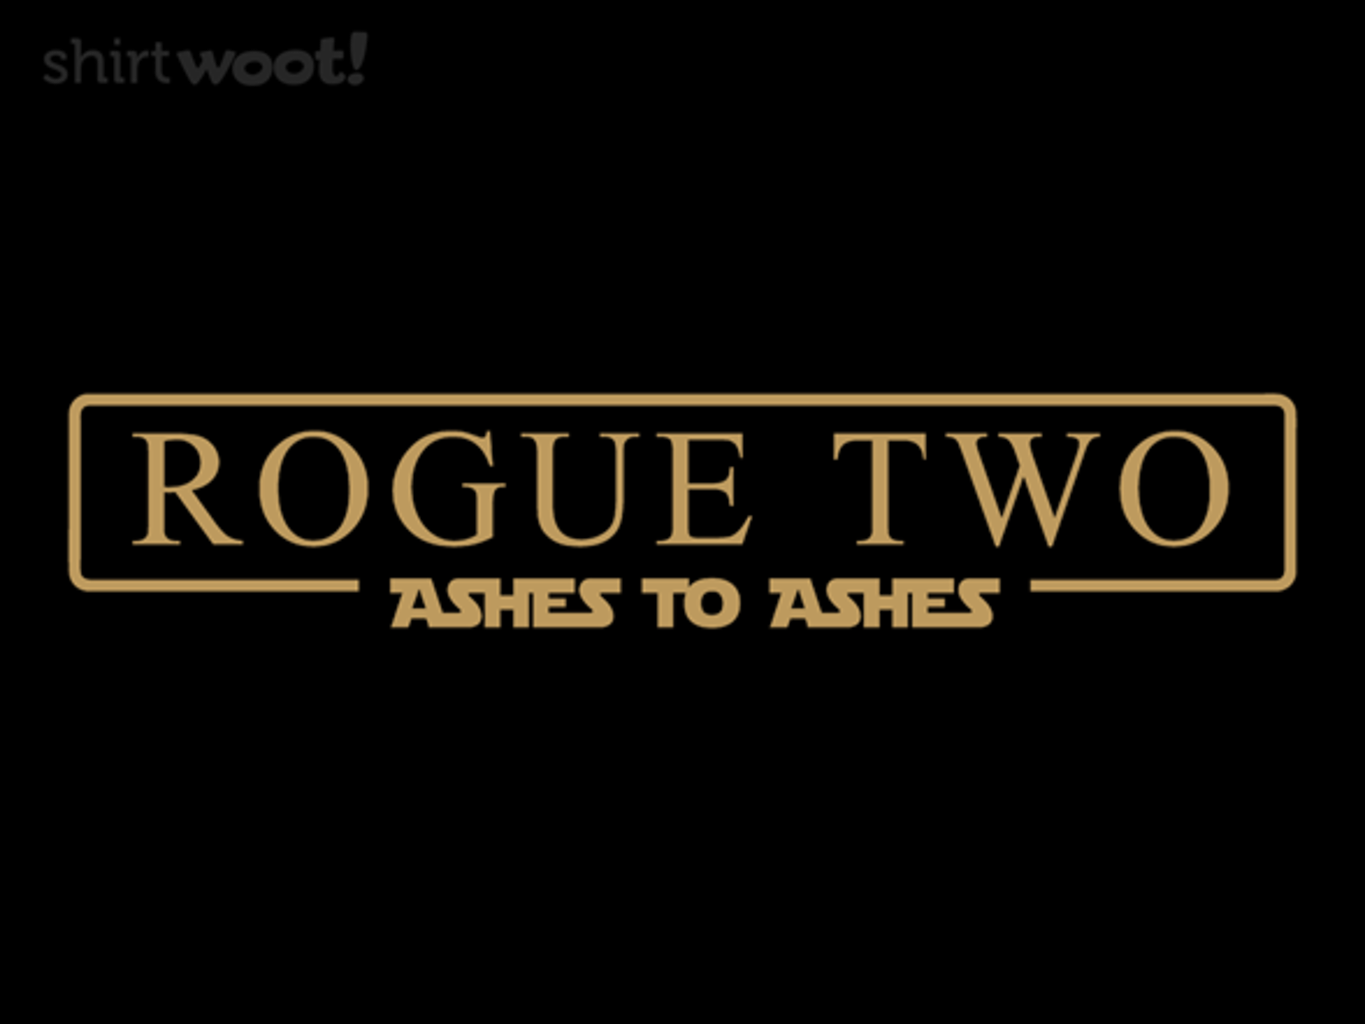 Woot!: Rogue Two